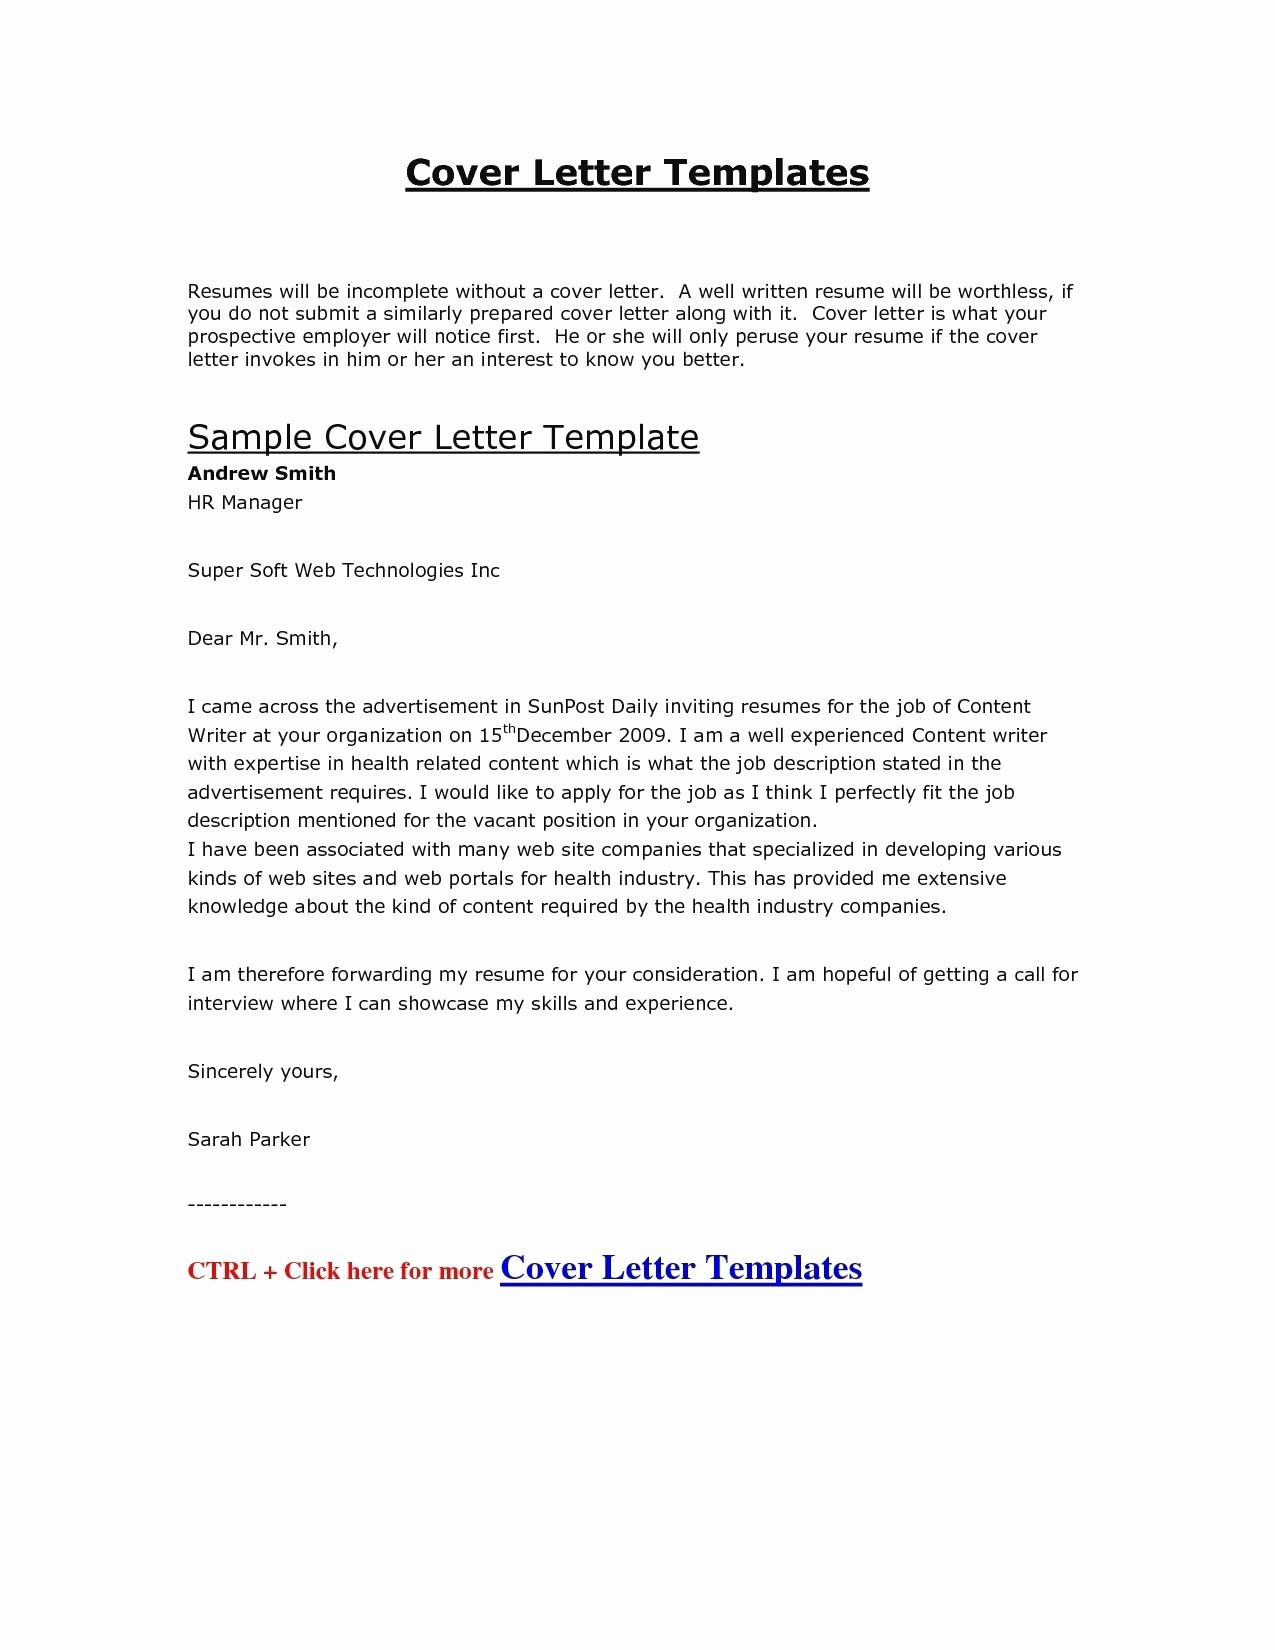 formal cover letter template example-Job Application Letter format Template Copy Cover Letter Template Hr Fresh A Good Cover Letter Sample 2-i